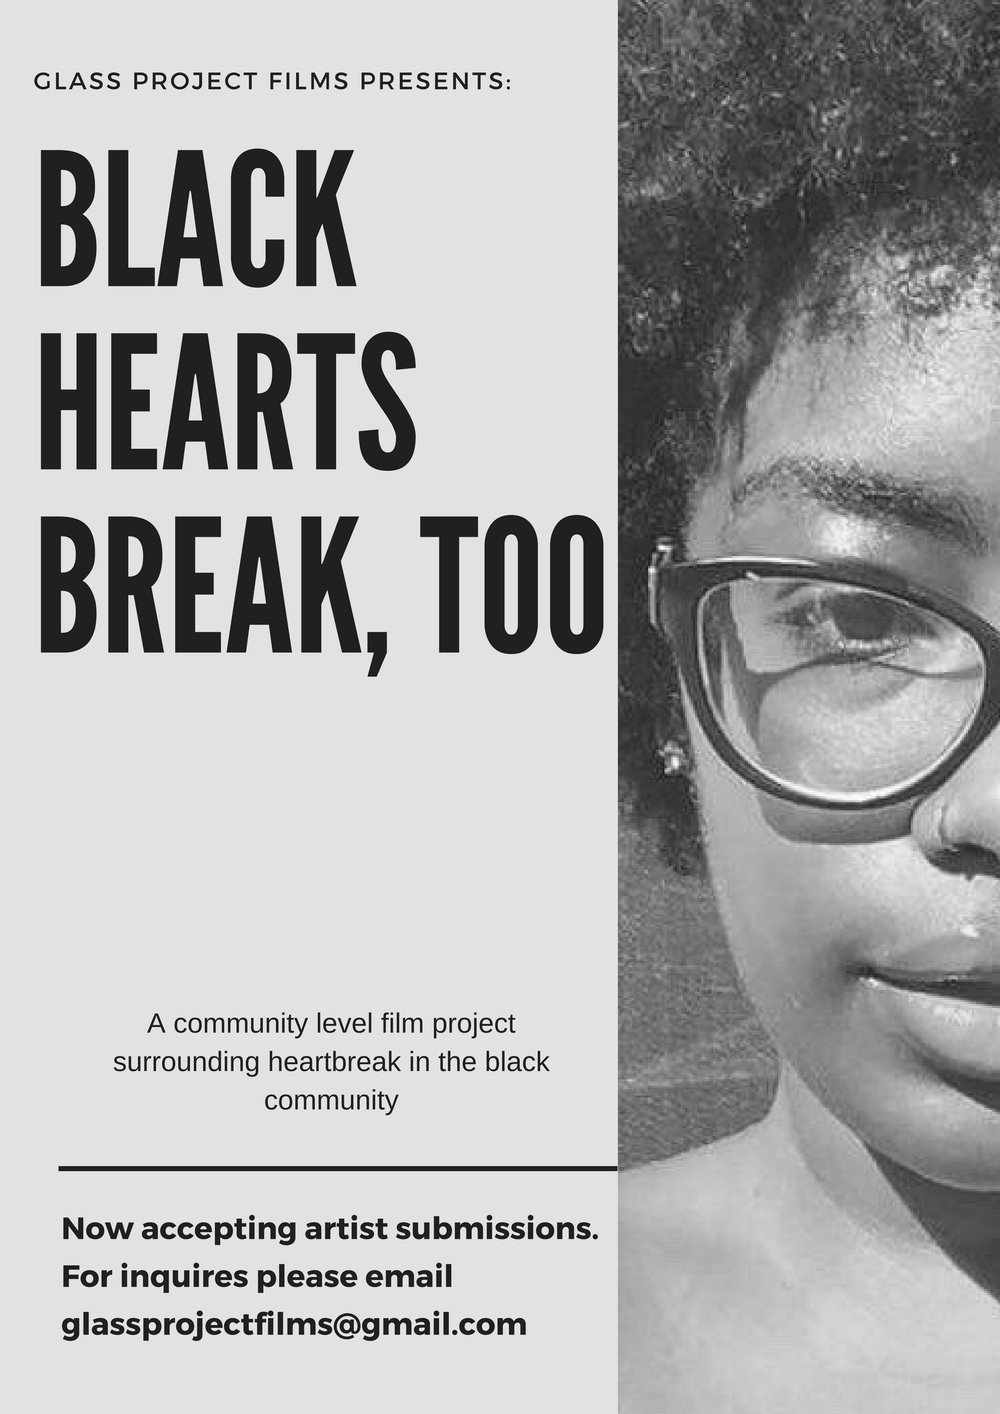 - Black Hearts Break, Too is Glass Project Film's first full-length production. This documentary allows different members of the black community to share their experiences of heartbreak - romantic, or otherwise. In doing so, this will facilitate a candid and judge-free discussion and representation on Black heartbreak among different individuals and their experiences. Art submissions currently still available. Please email for more information.